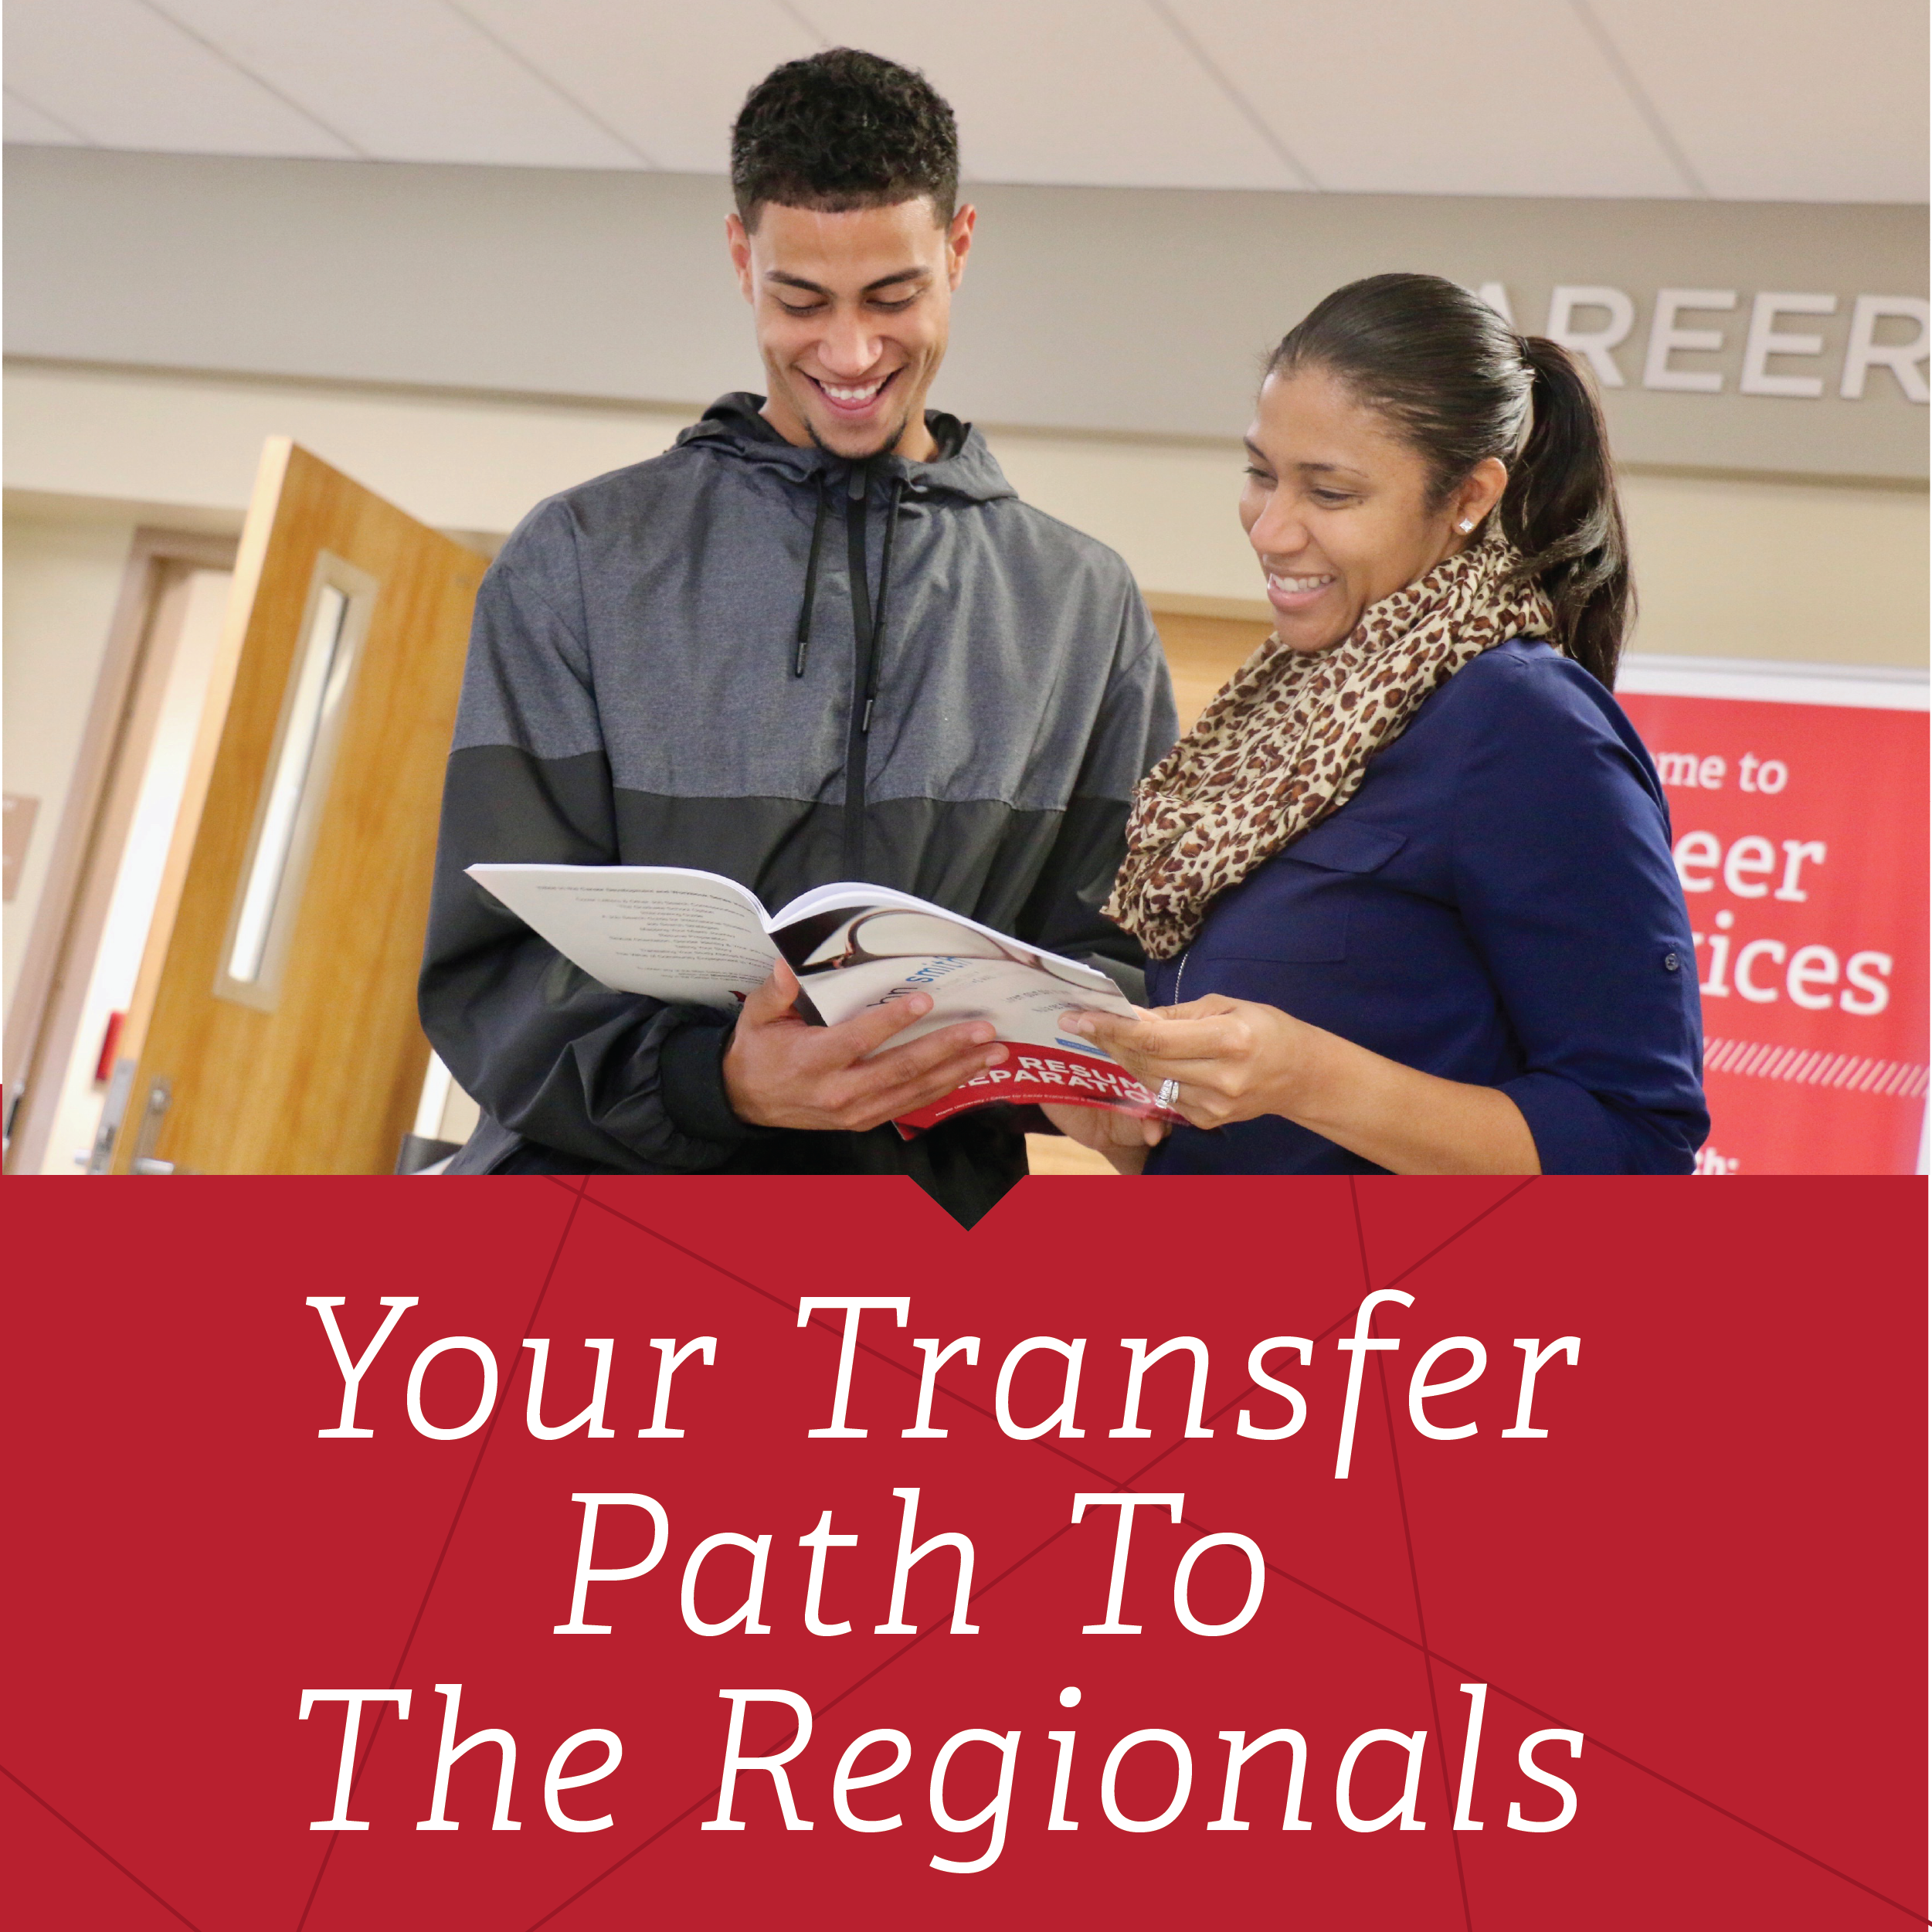 A male student talking to a female counselor looking at a book. Your transfer path to the Regionals with a red background.